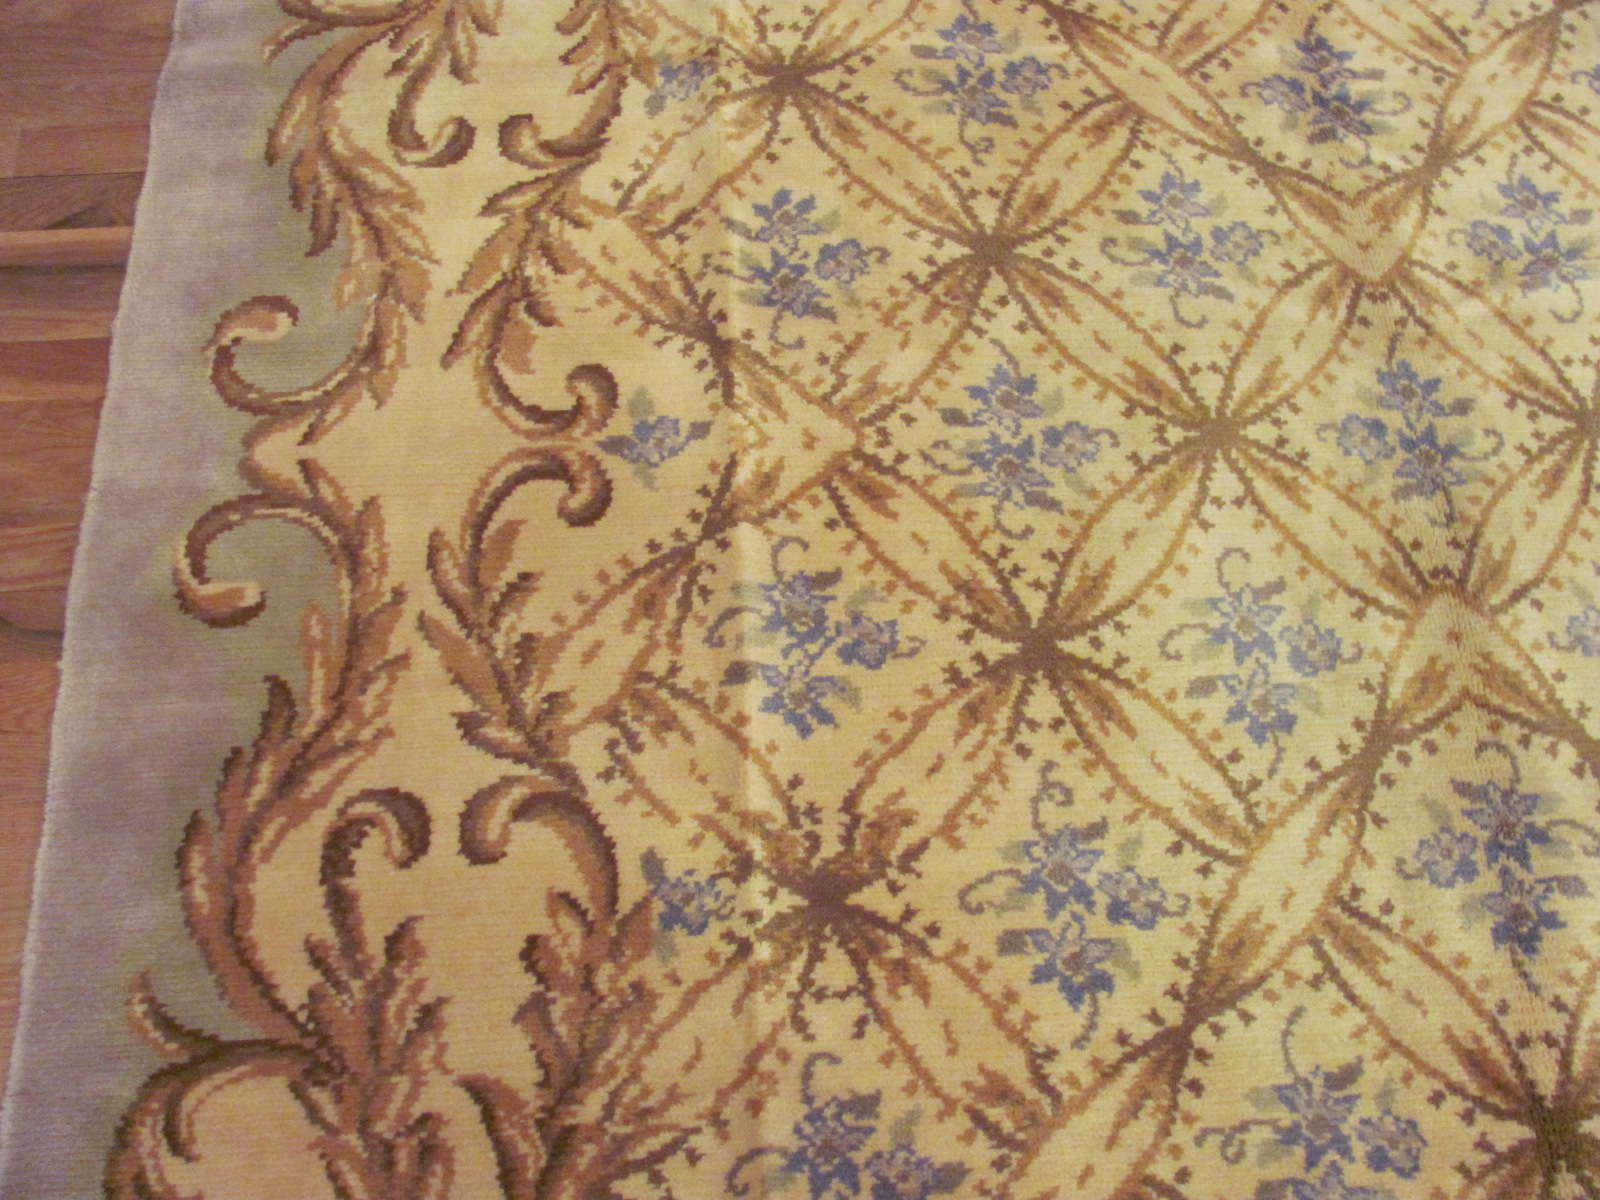 24489 Spanish carpet 7 x 9,2 -2